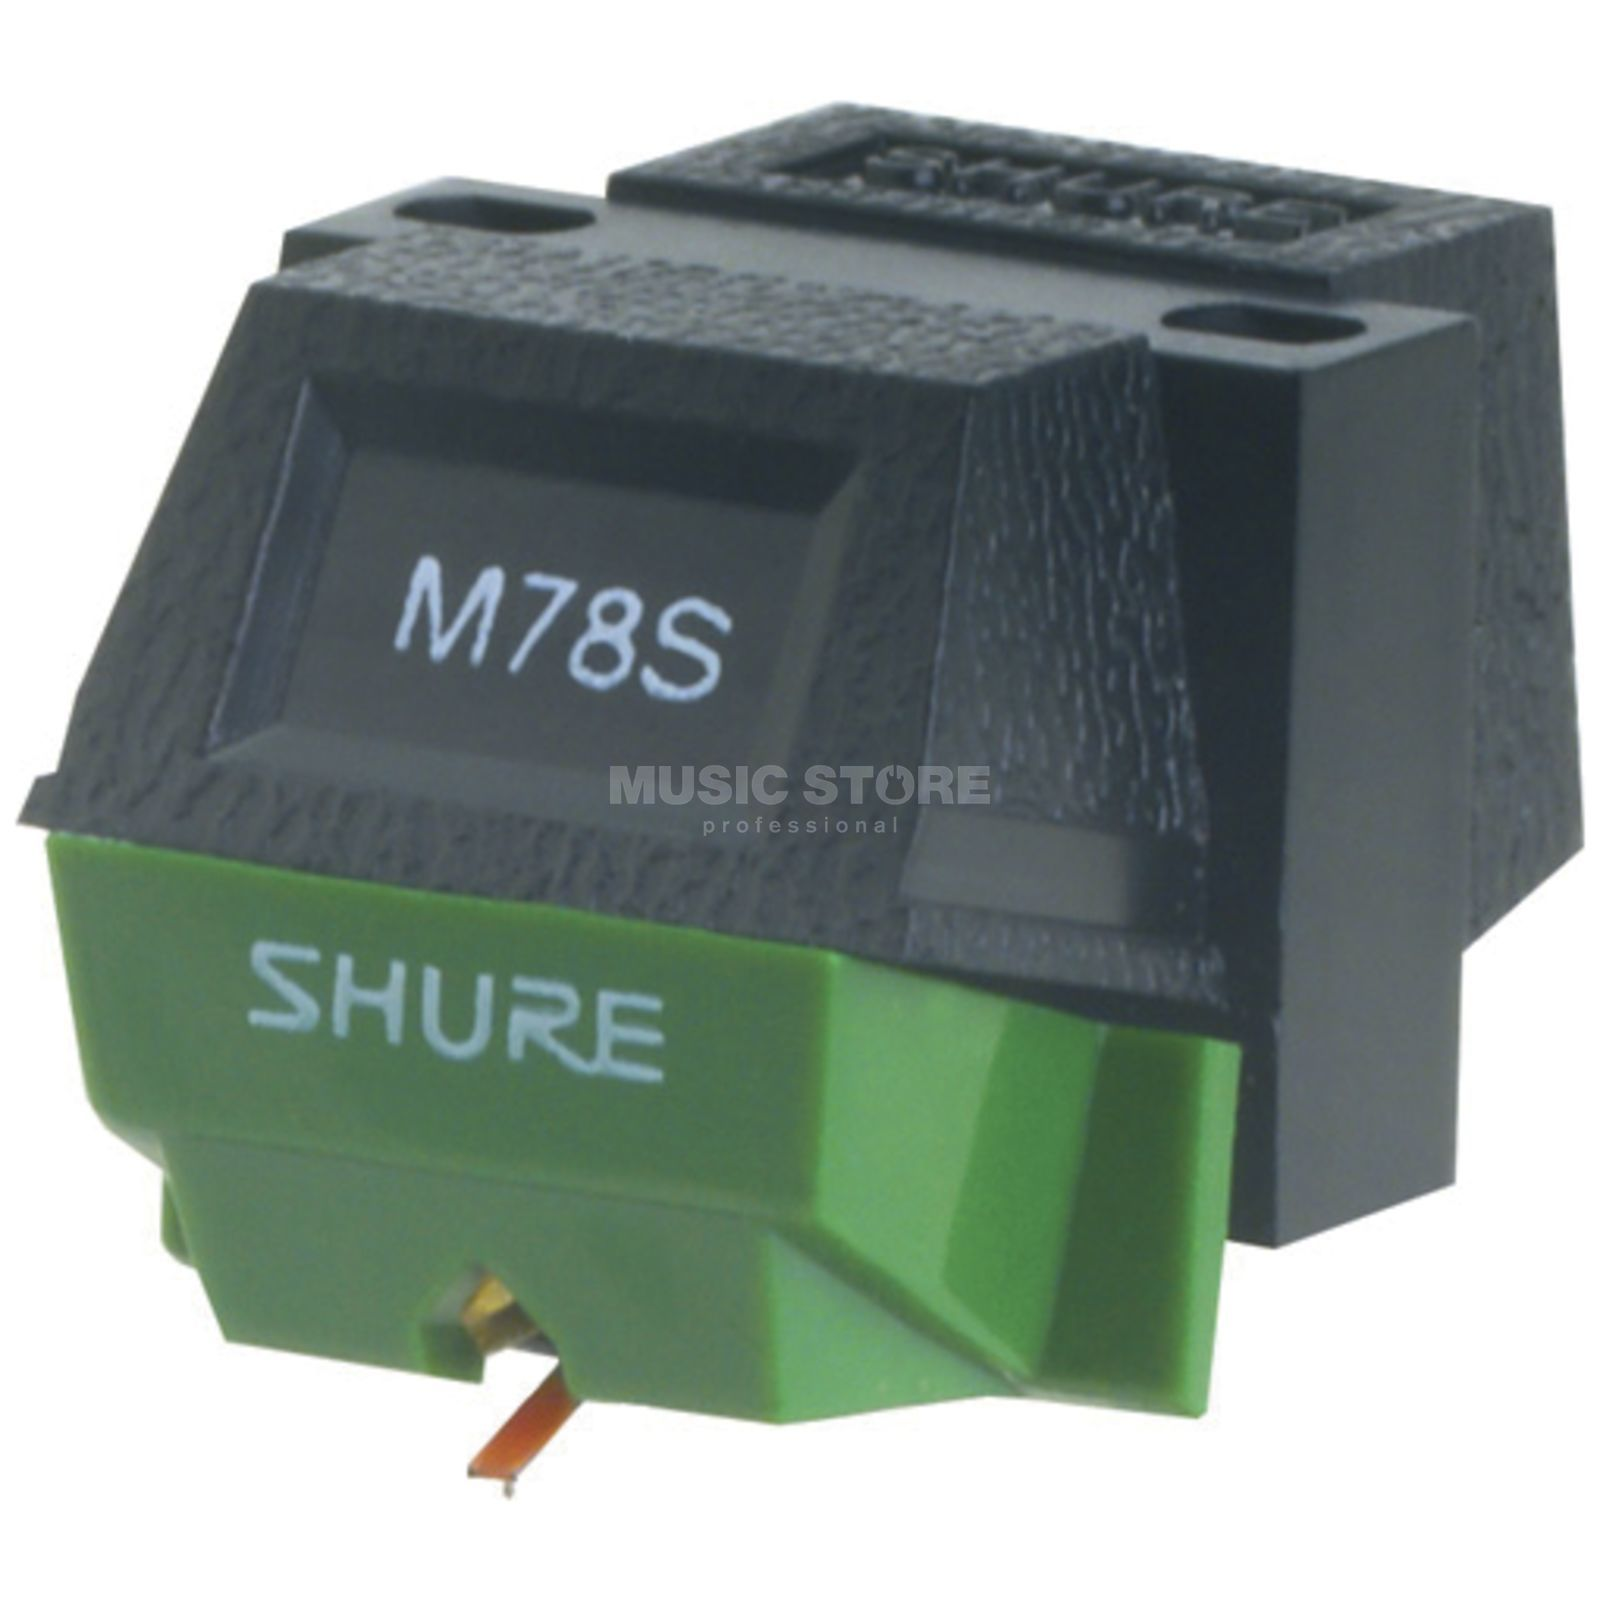 Shure M78S/ Pick-Up System for 78rpm, Spherical Produktbillede